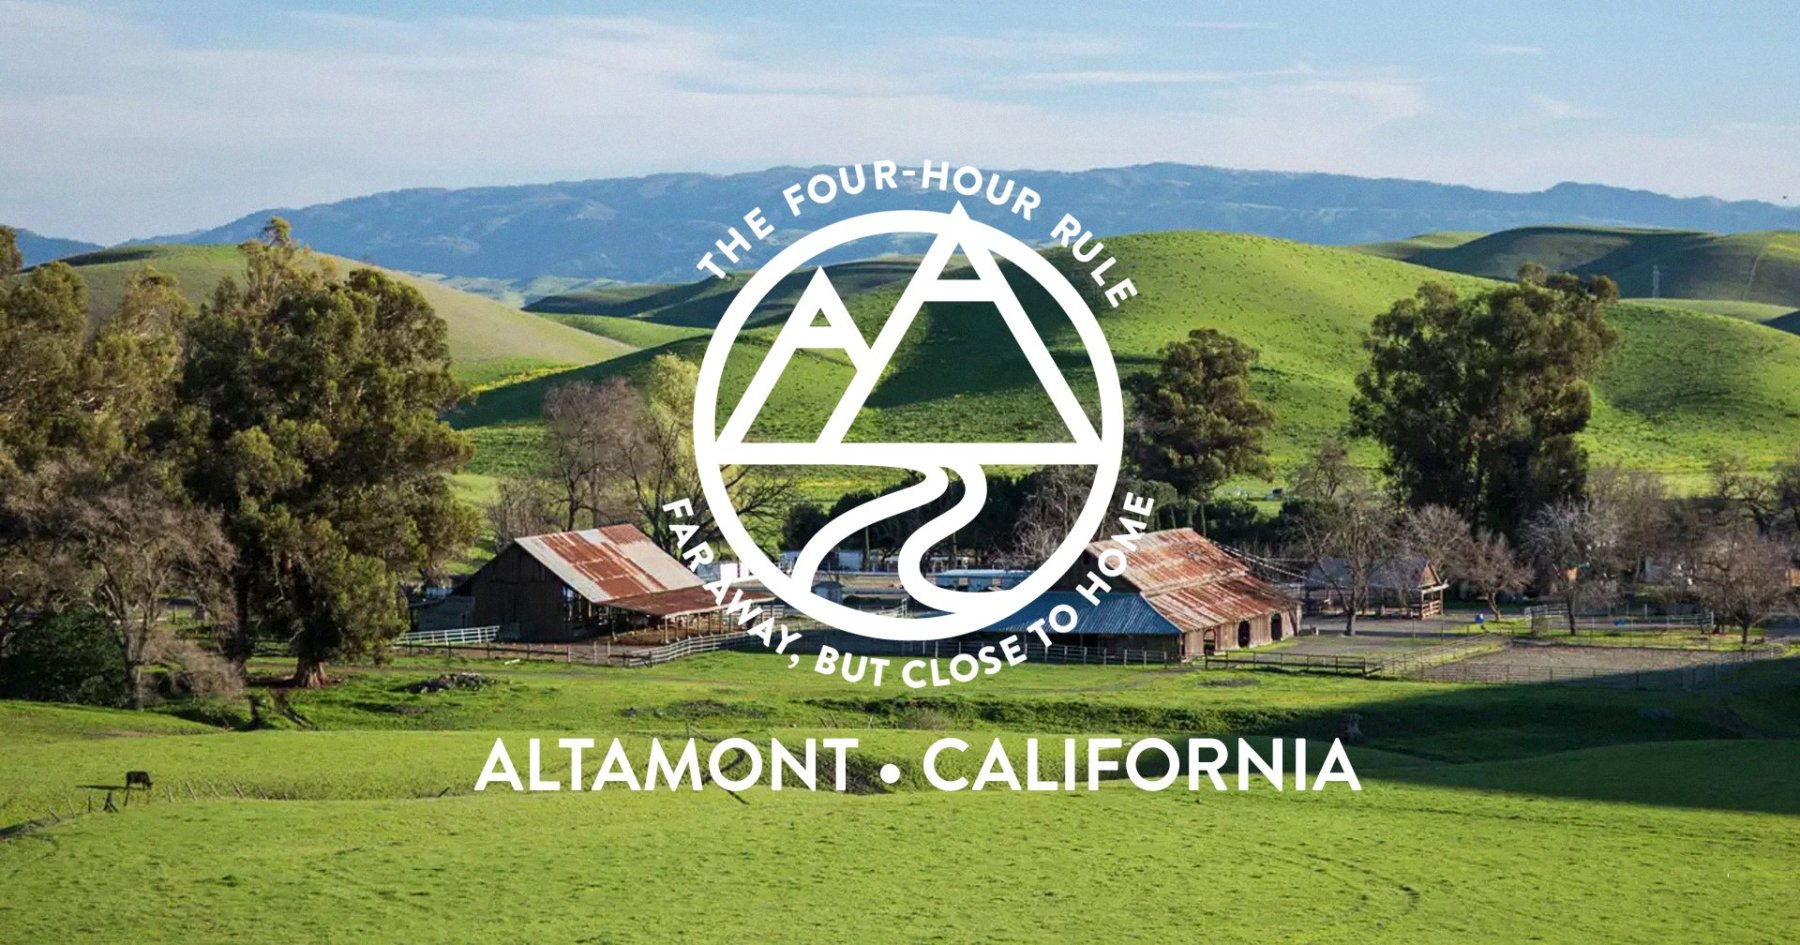 The 4 Hour Rule: Altamont